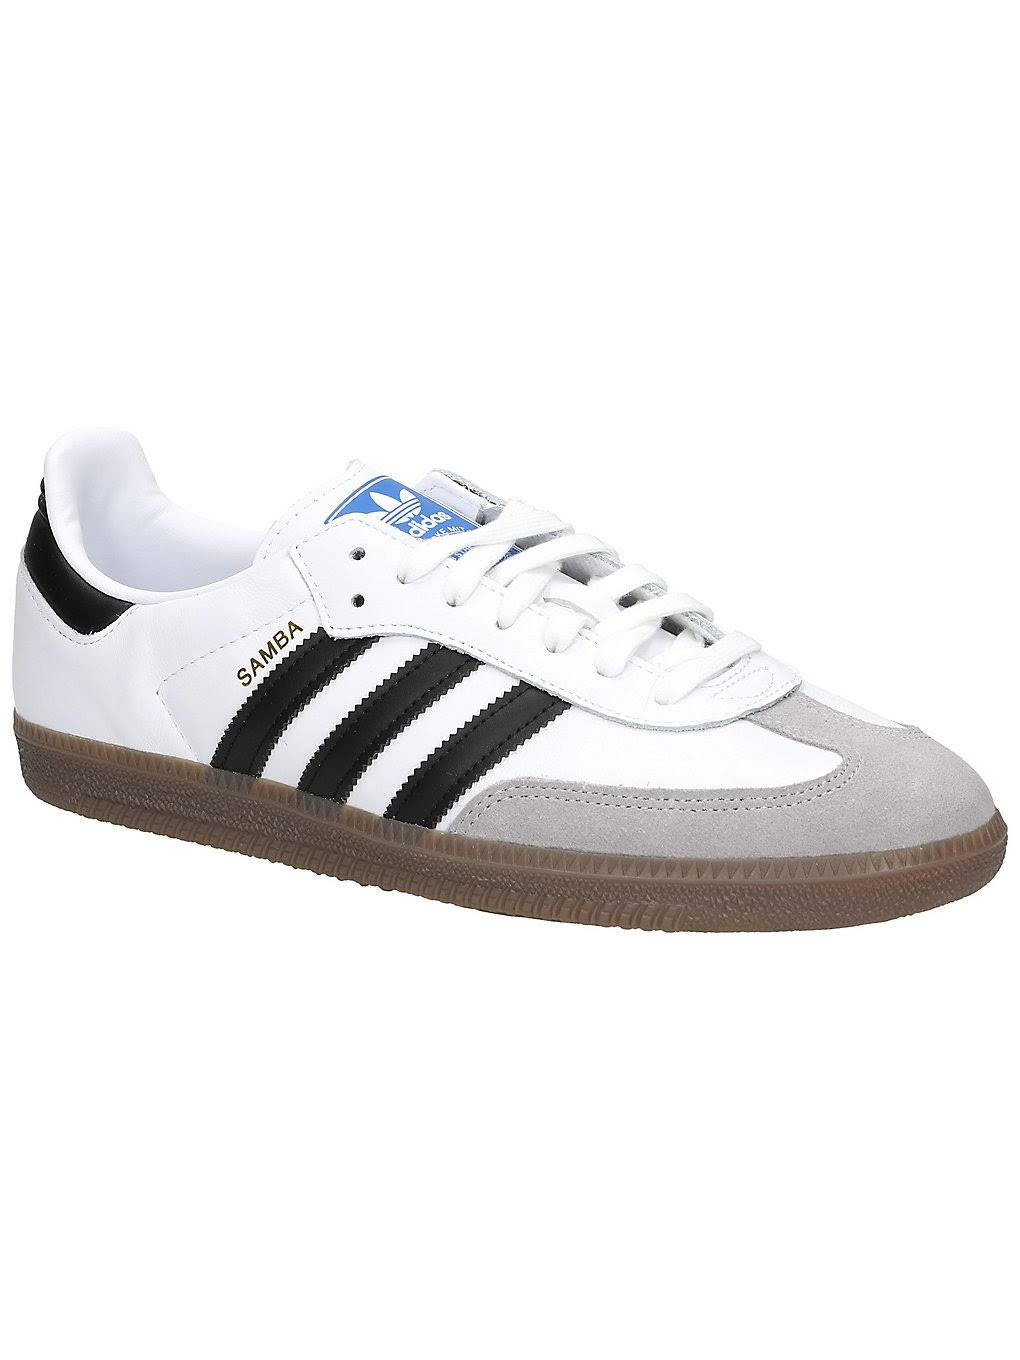 Samba Shoes Og Ftwrwhite coreblack Originals coregranite 0 White Men Sneakers Size Adidas 9 1x5zqww